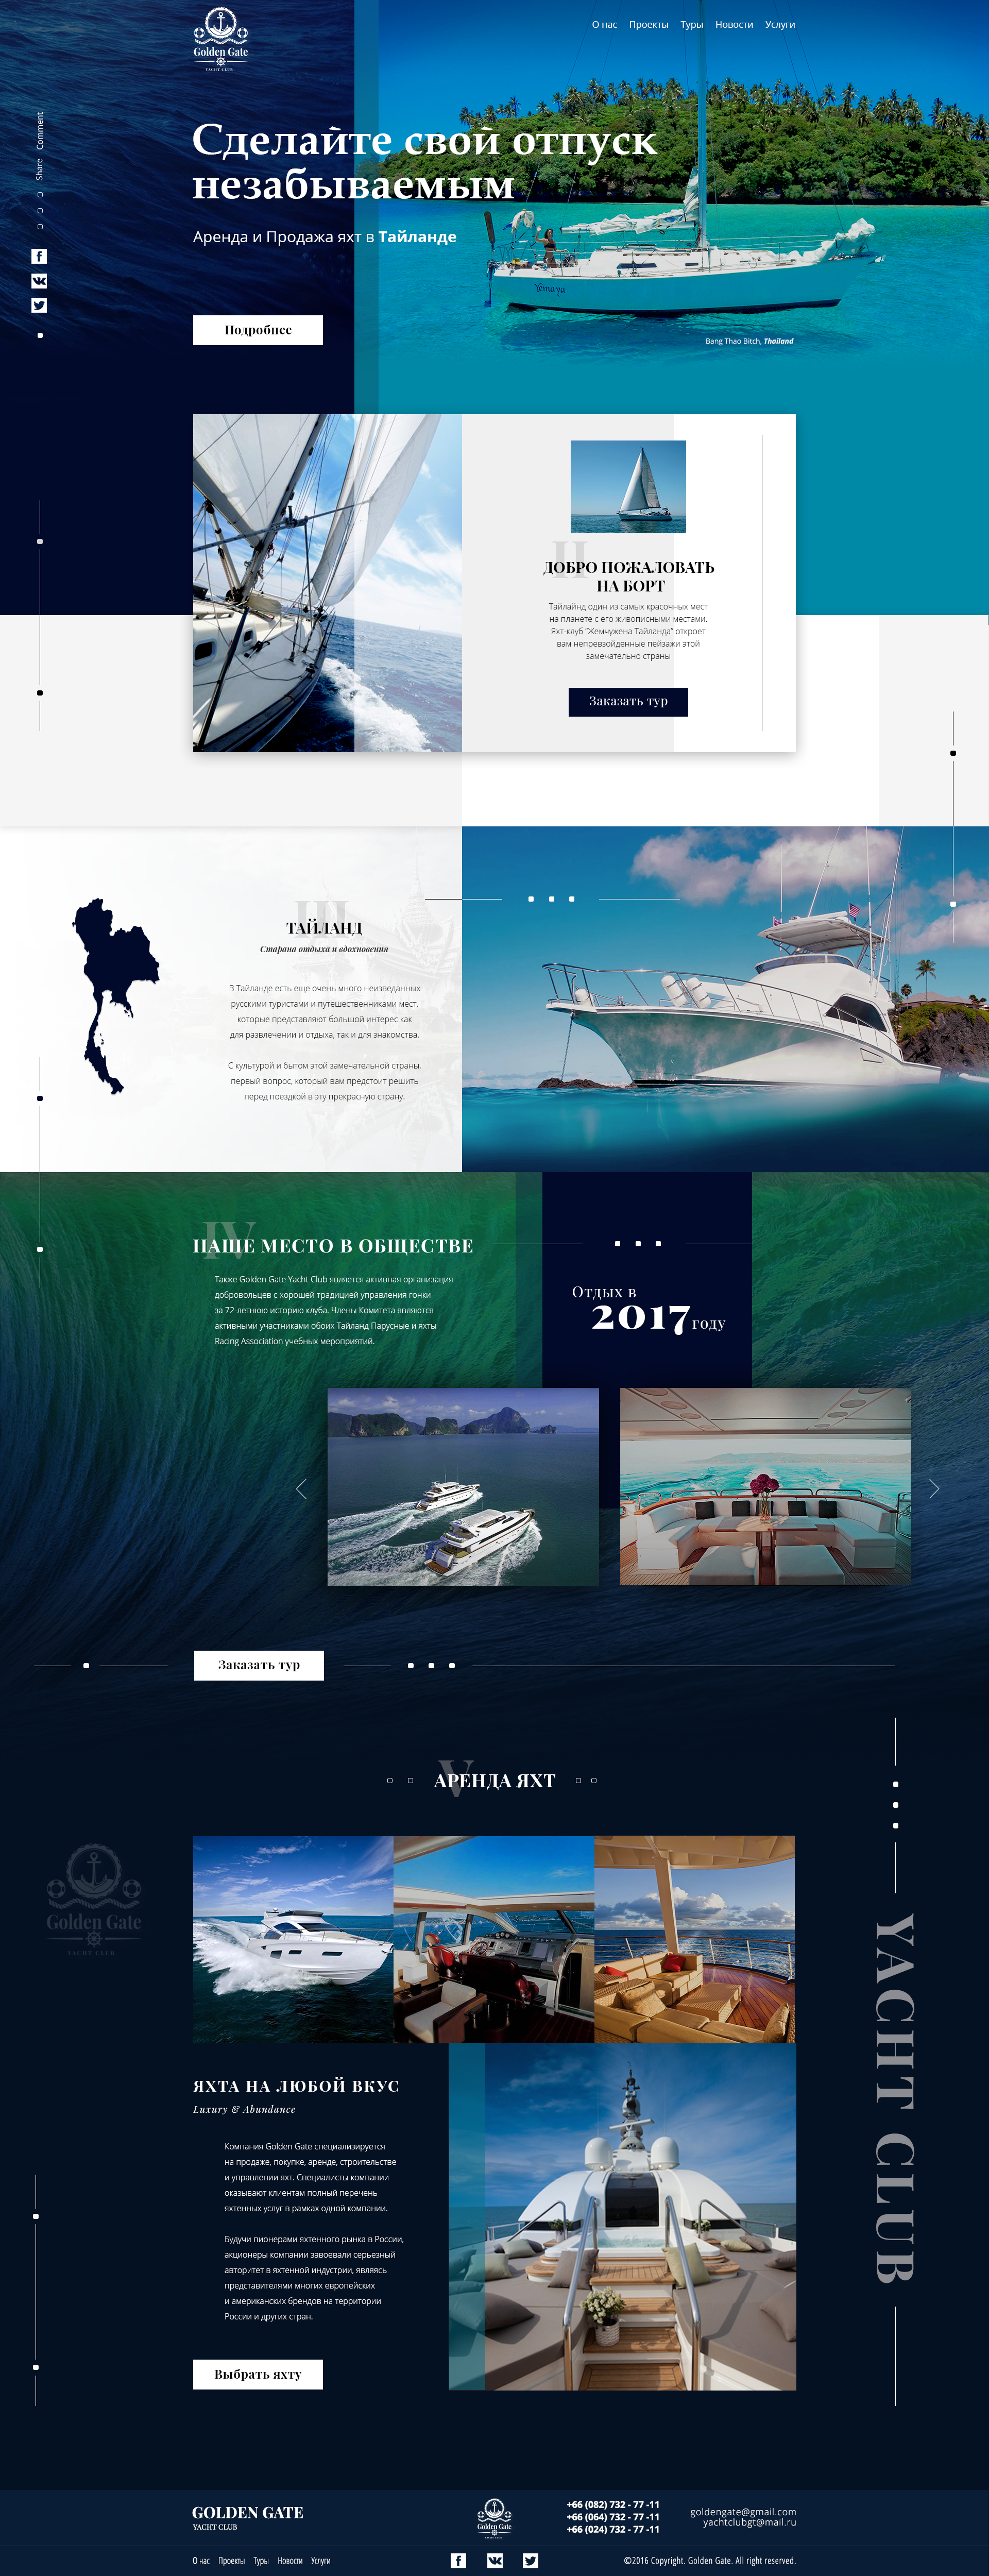 Landing page of rent yachts in Thailand